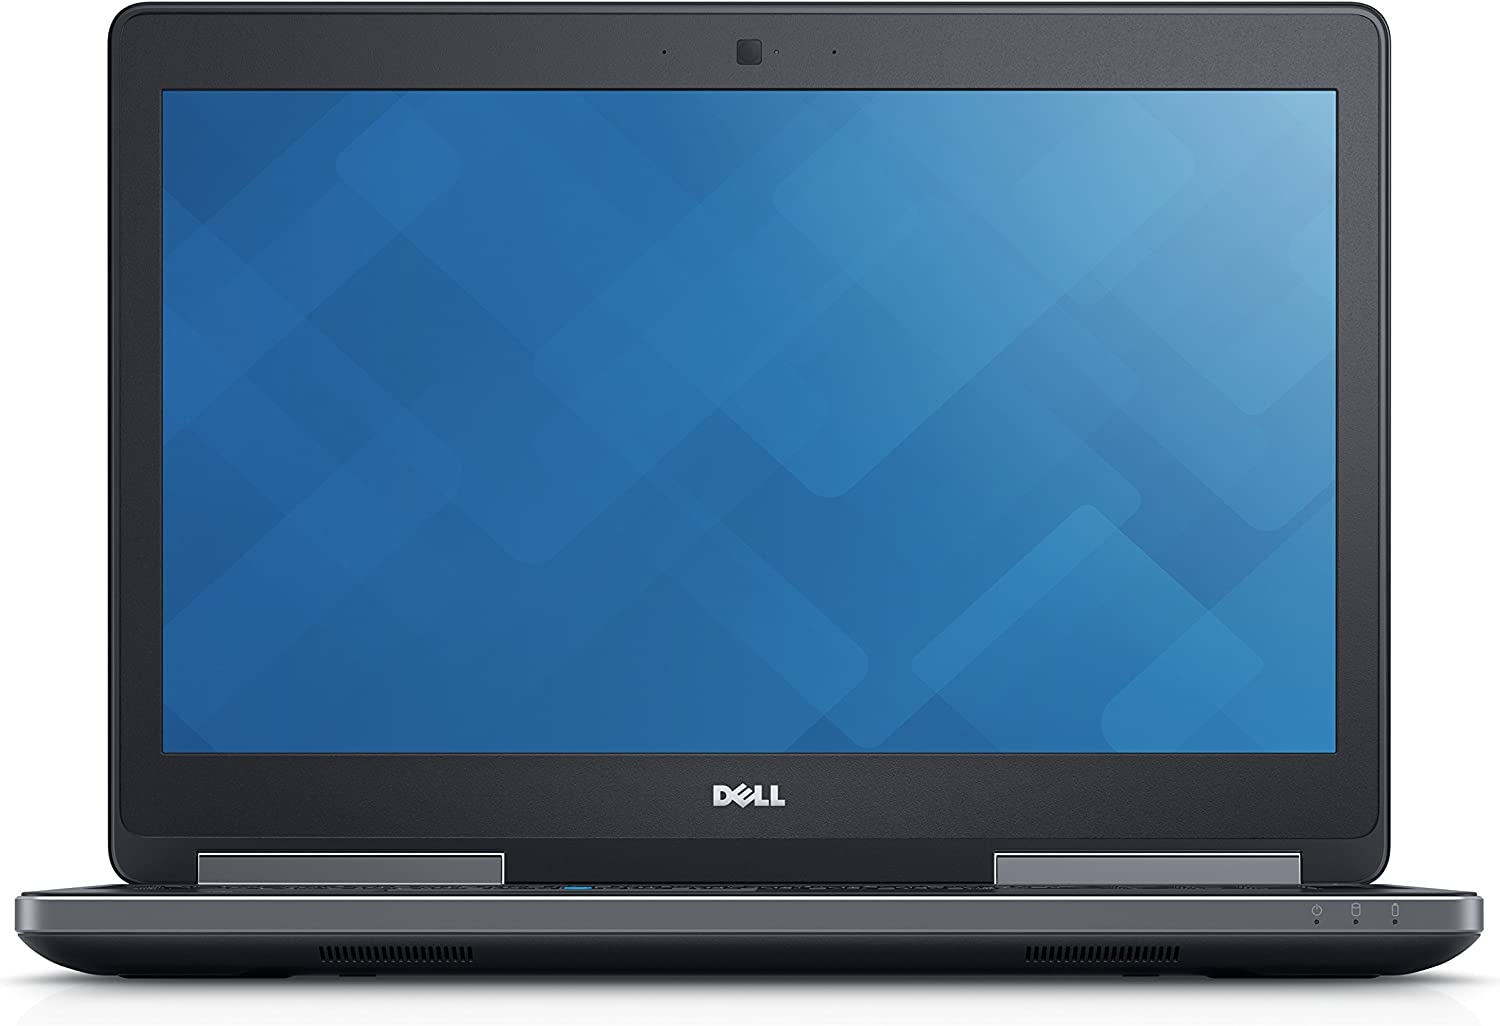 Dell PRECISION 15 M7520 FHD i7-7820HQ 32GB 512GB SSD AMD WX4130 4GB 10 PRO (Renewed)